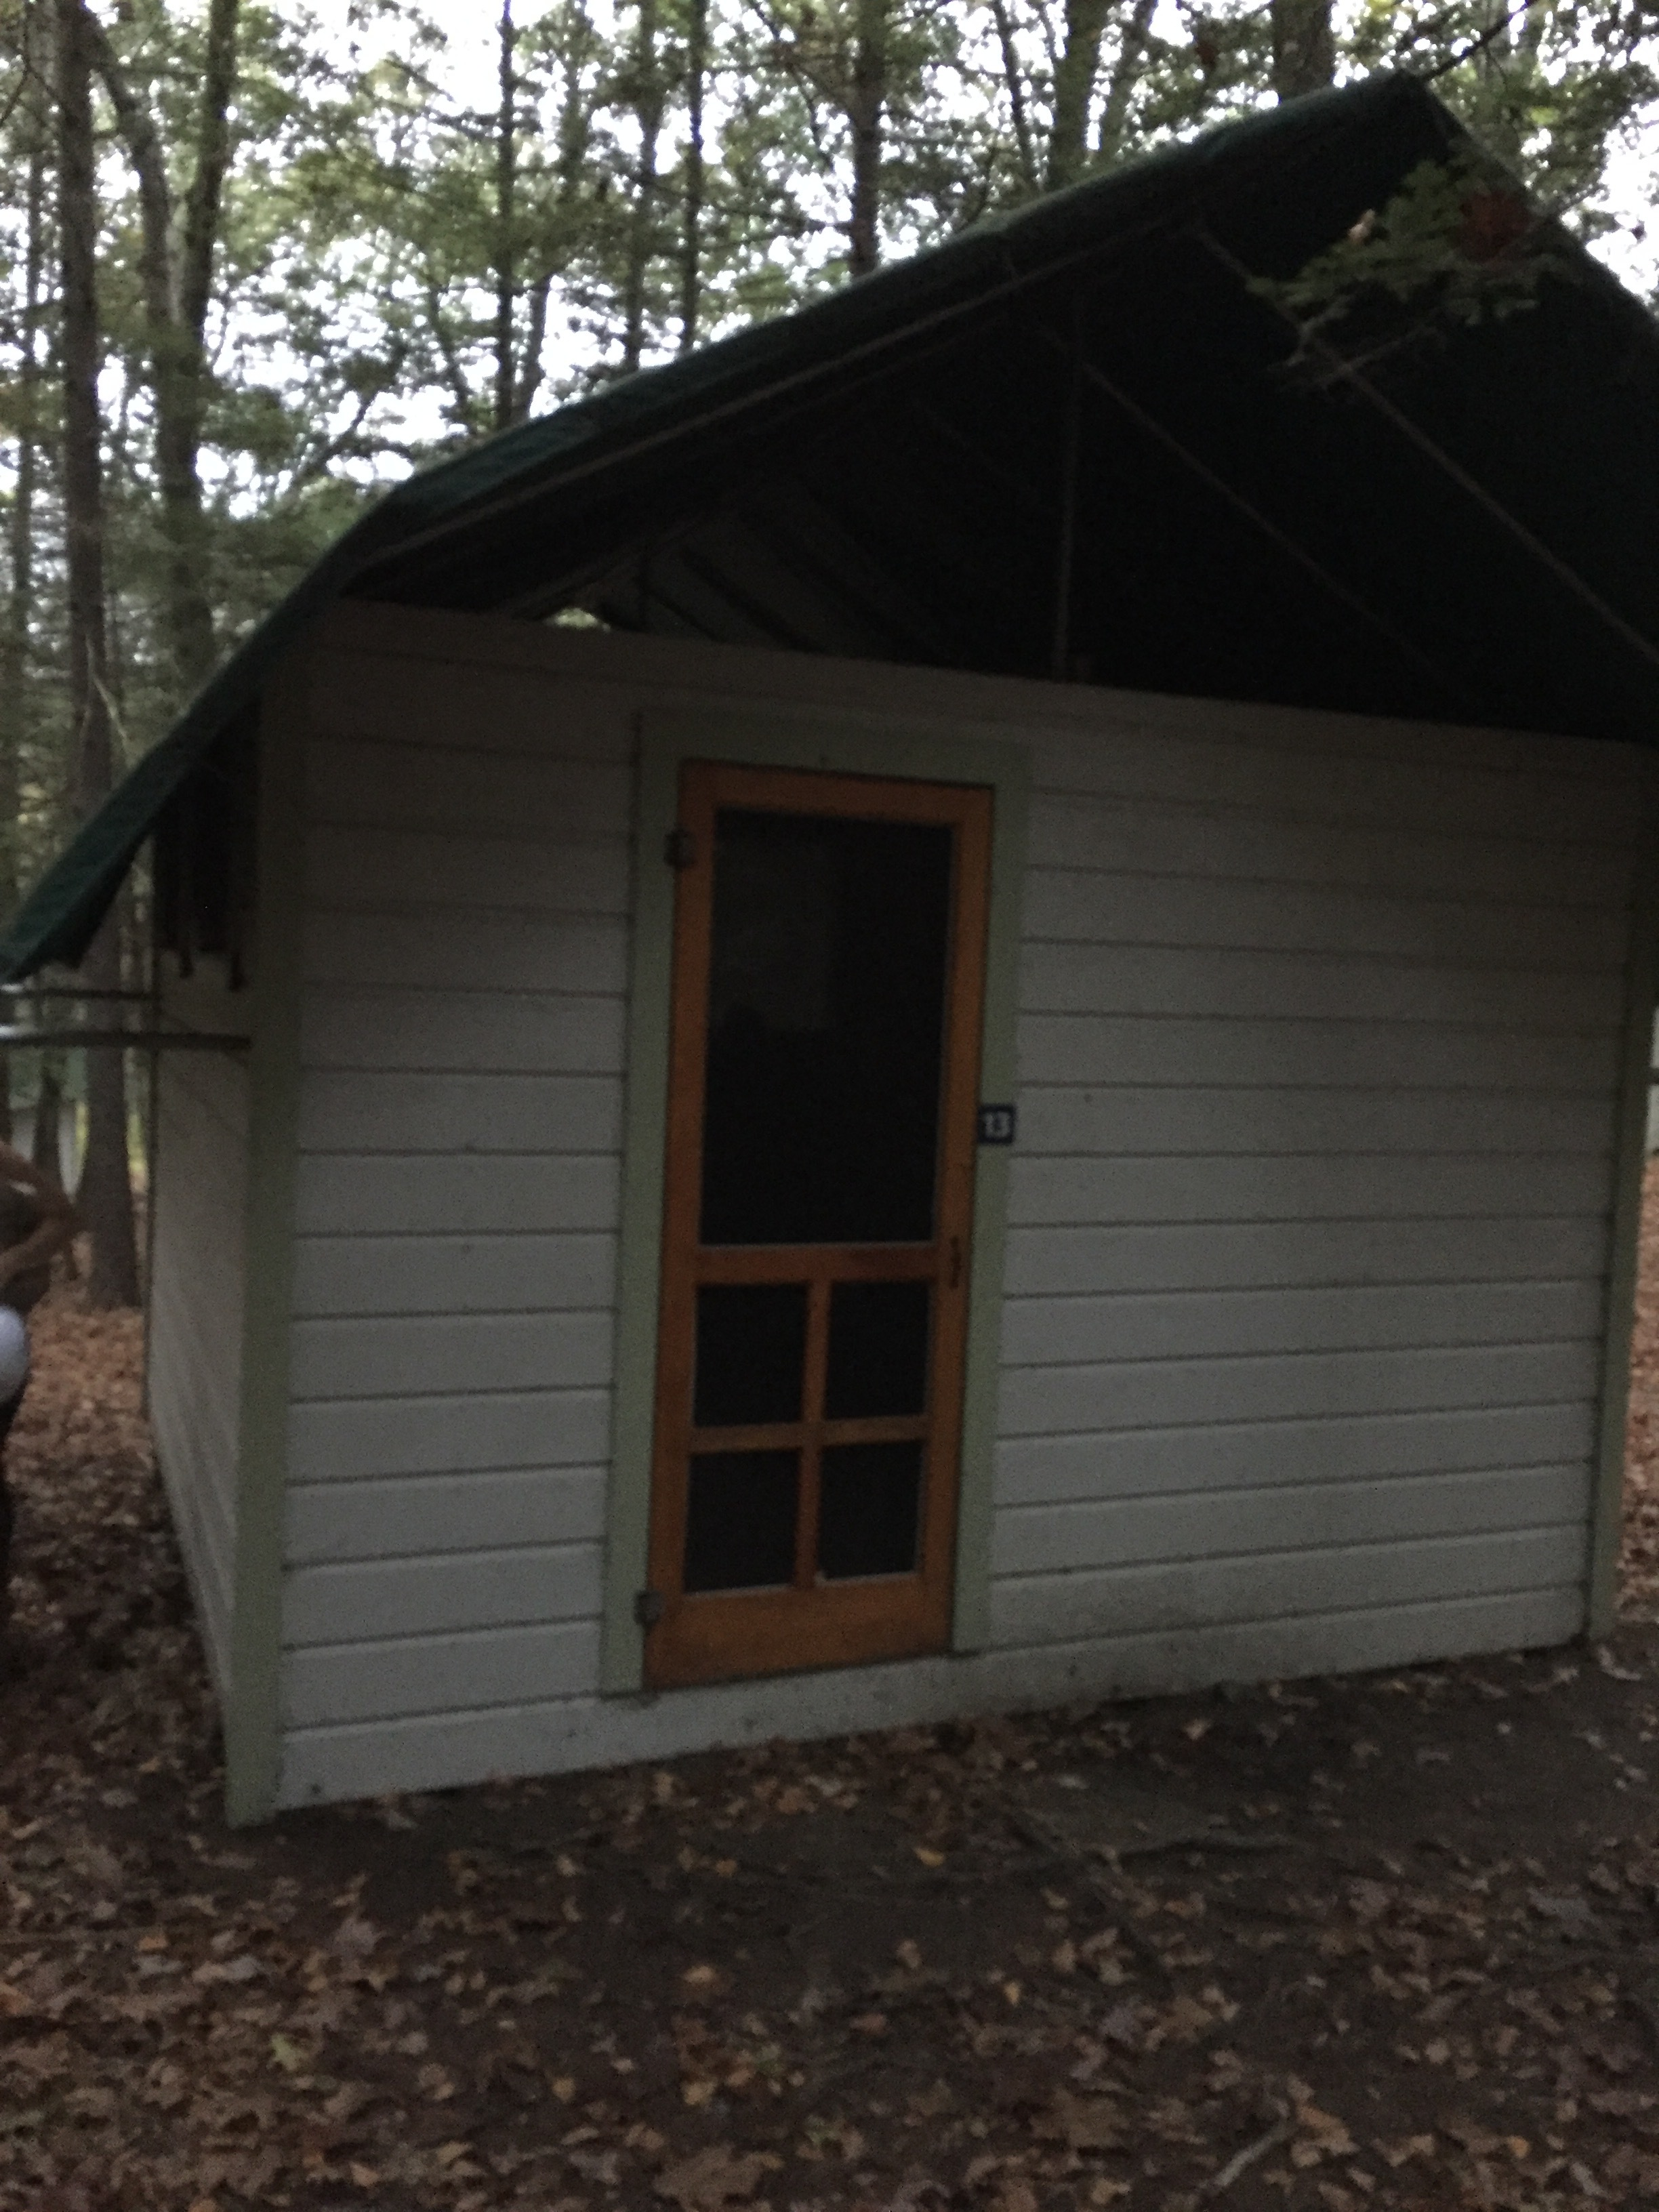 This was our lodging at Omega, open air screen door, no heat, and open air ceiling